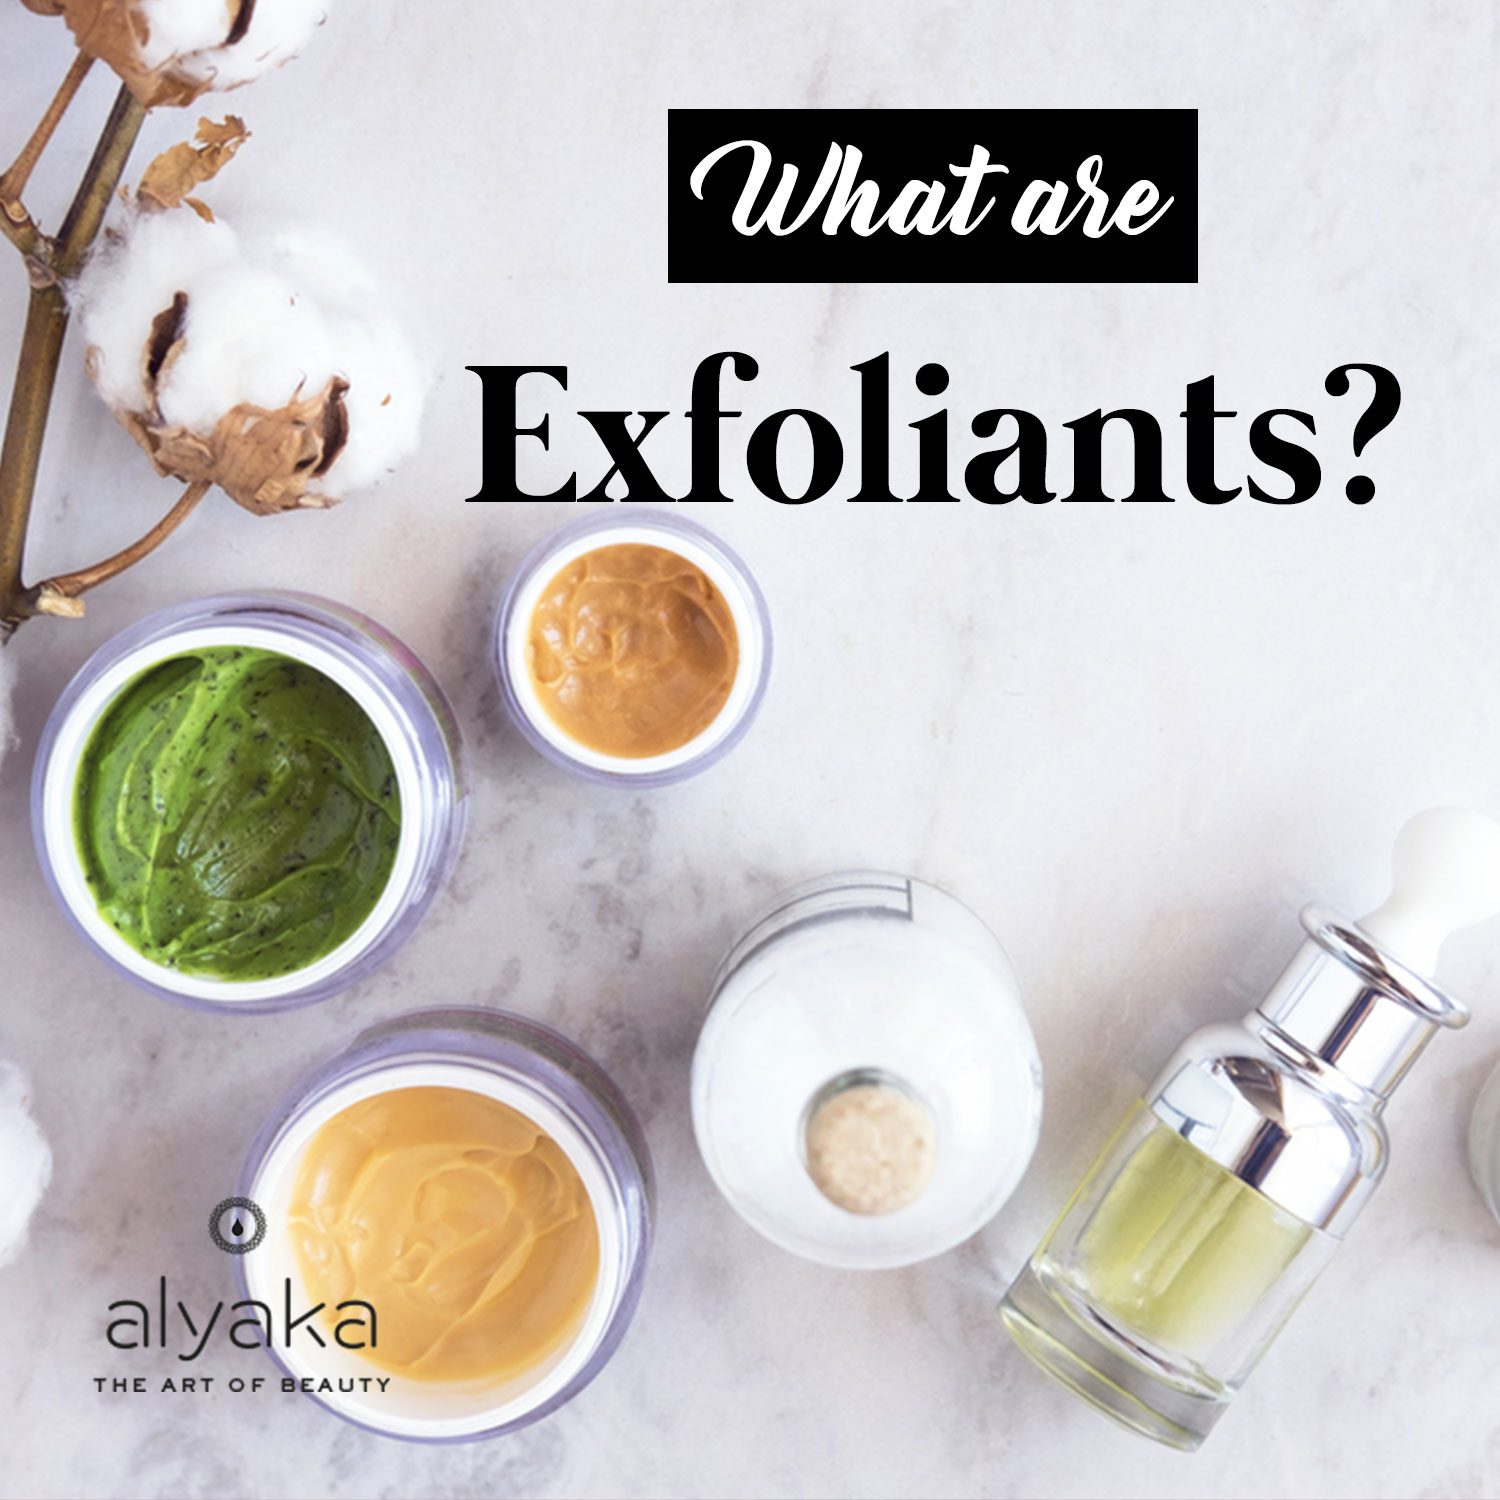 What are Exfoliants